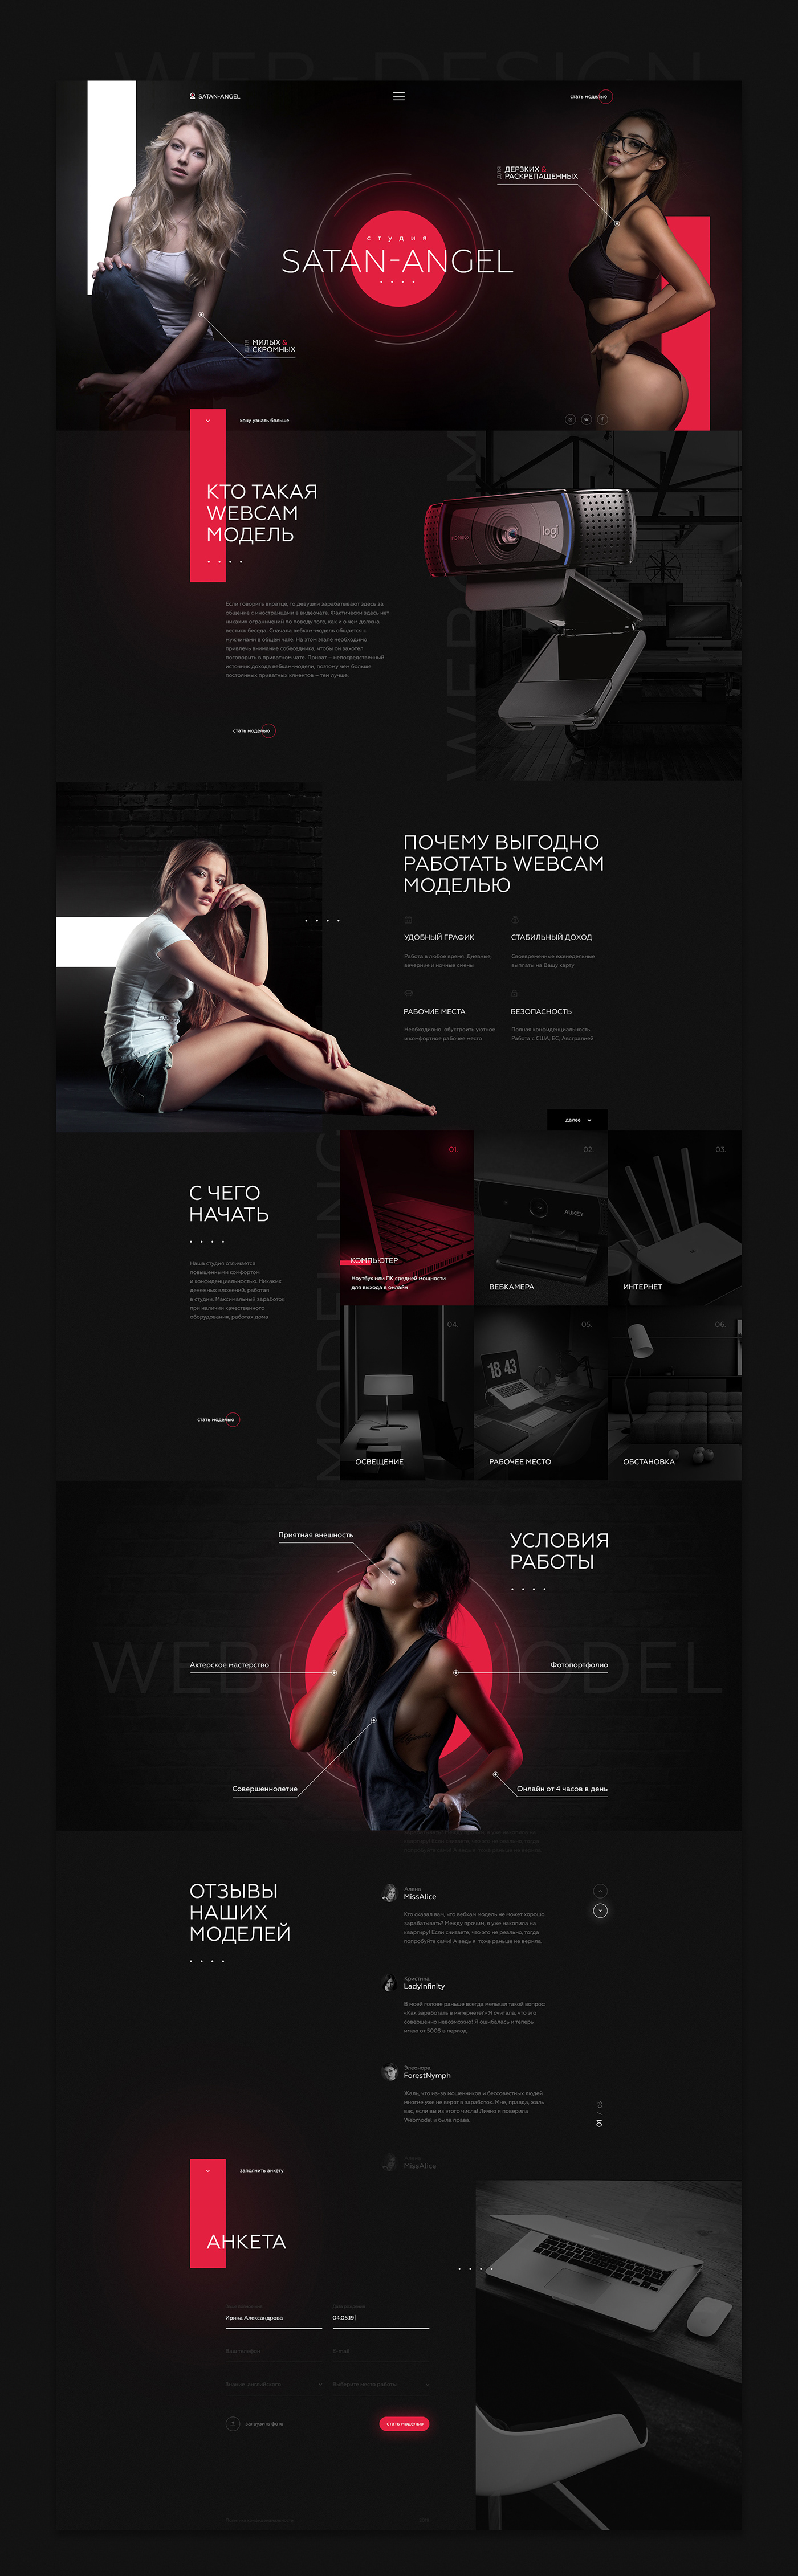 web-design UI ux landing page animation  interaction red black site woman